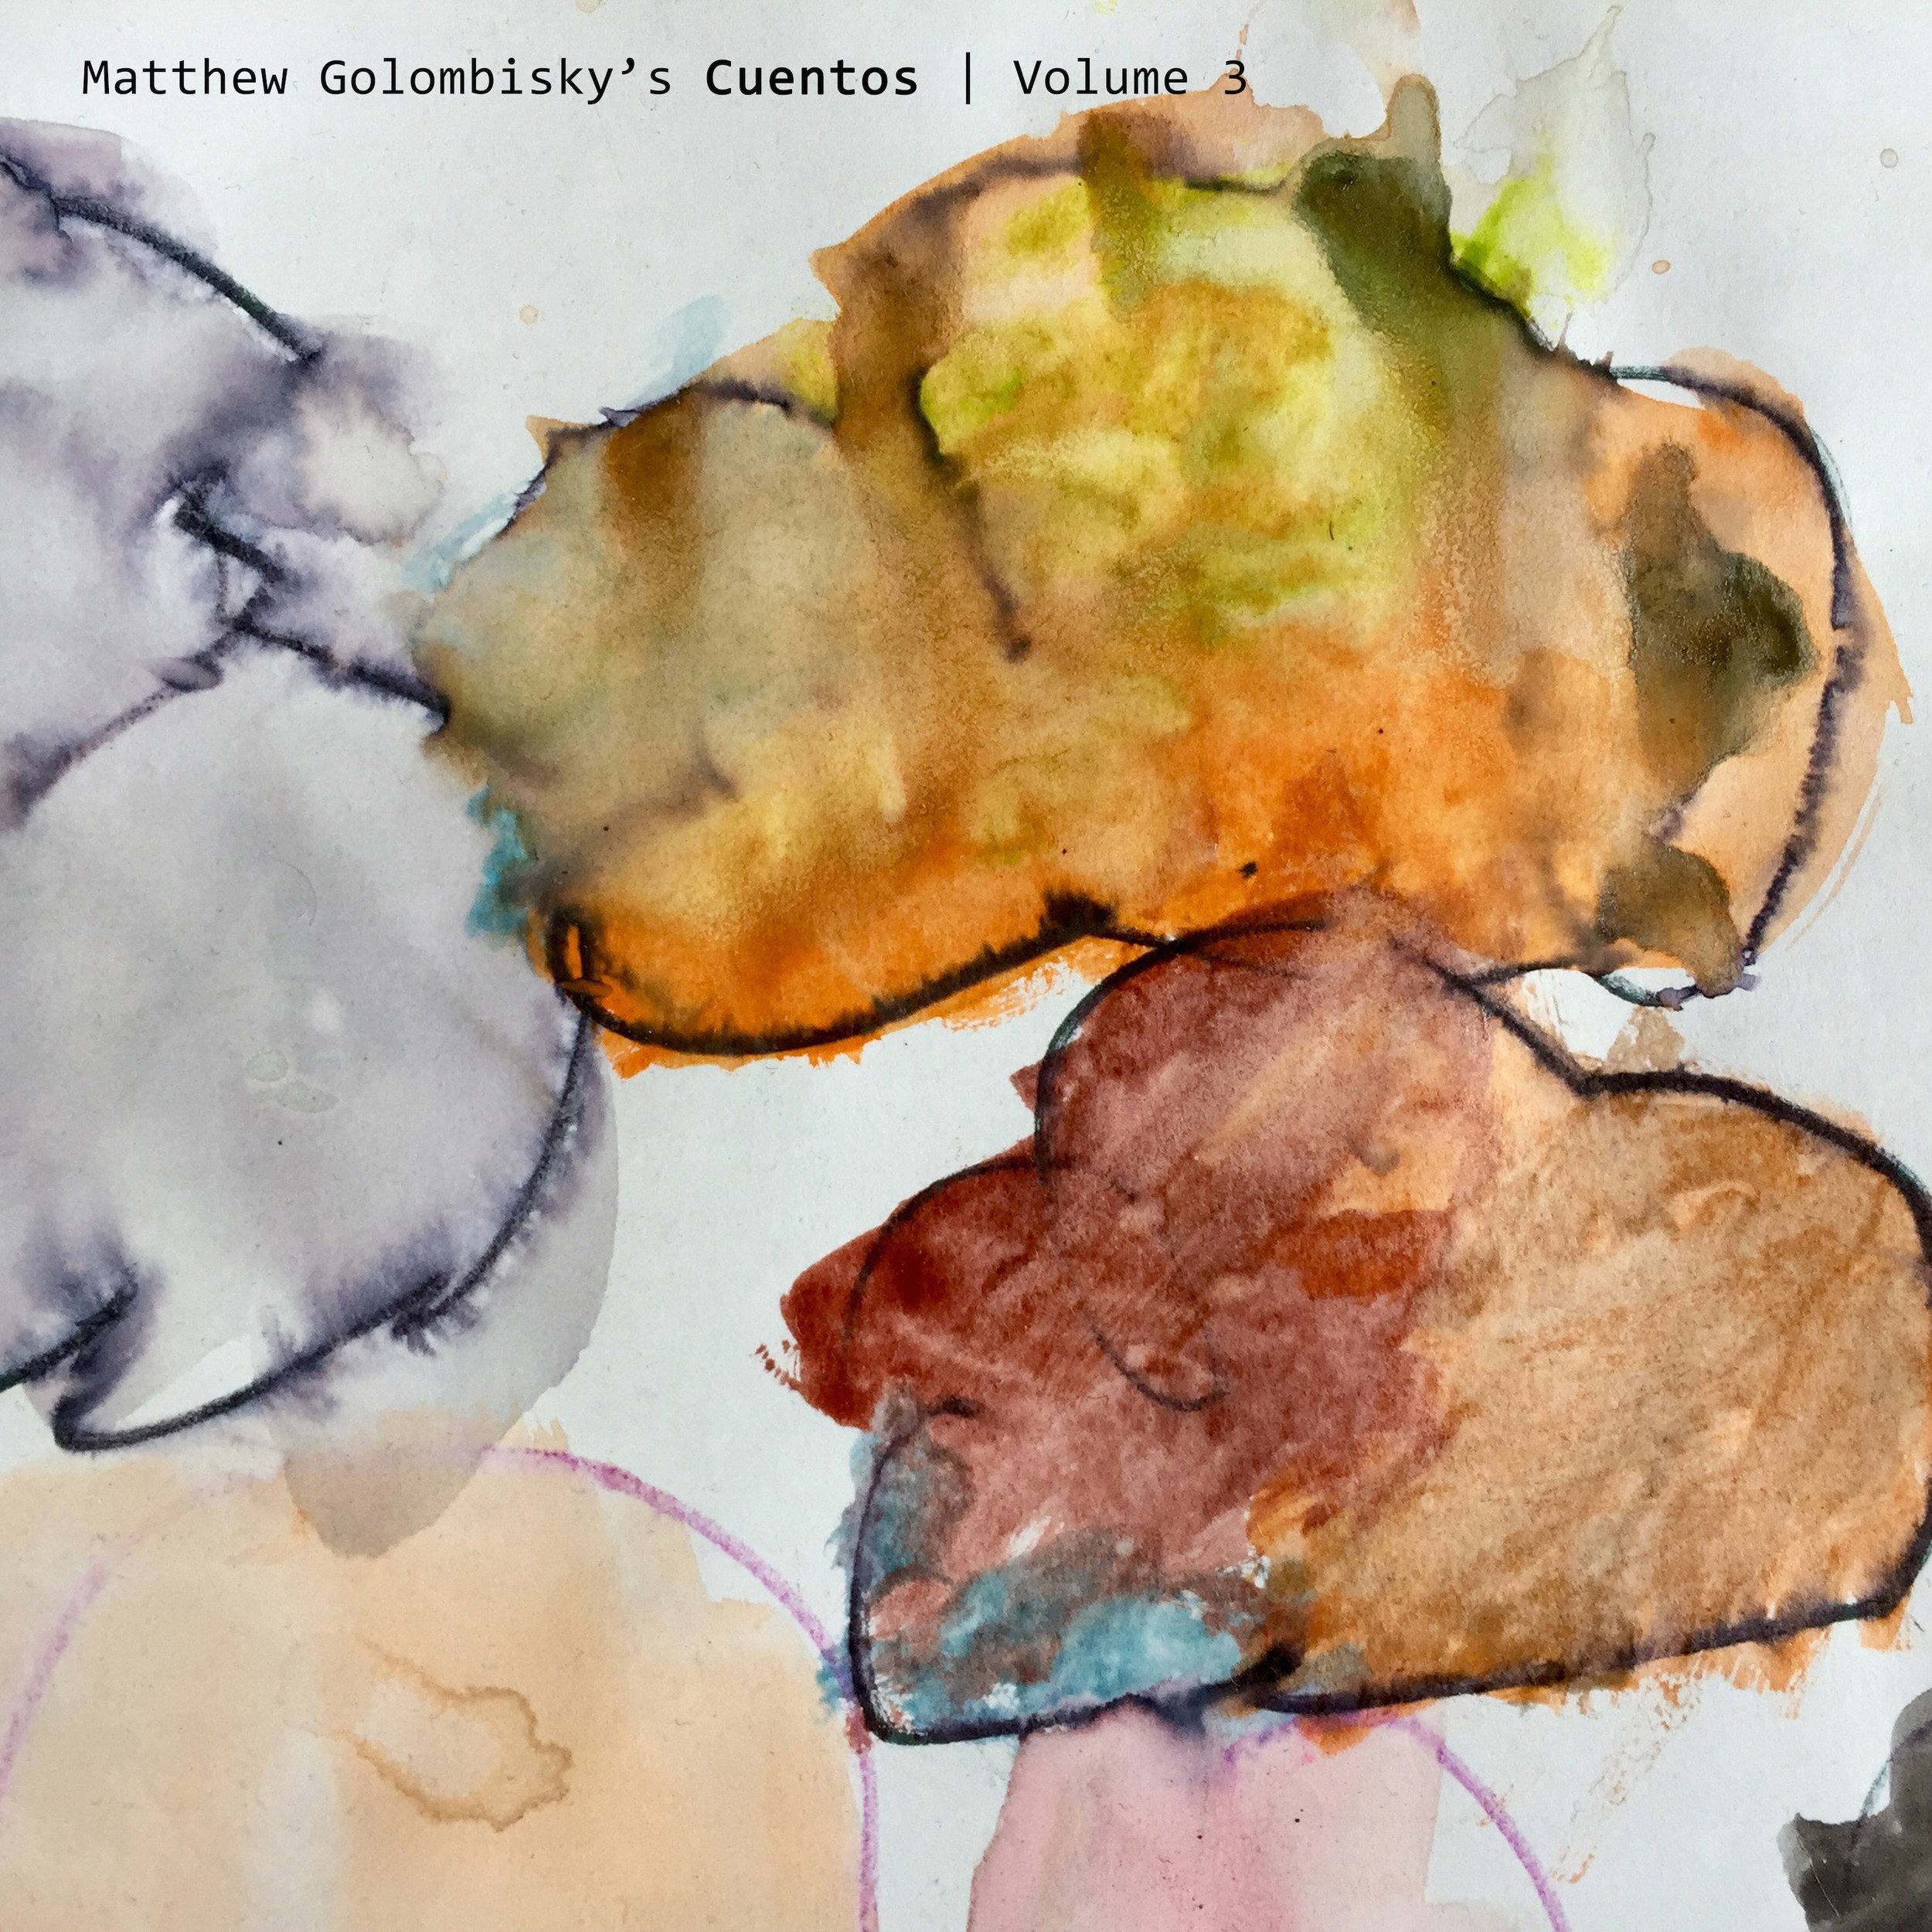 Matthew Golombisky's Cuentos  Volume 3  Released Nov 16 2018  Cassette. Order  here .